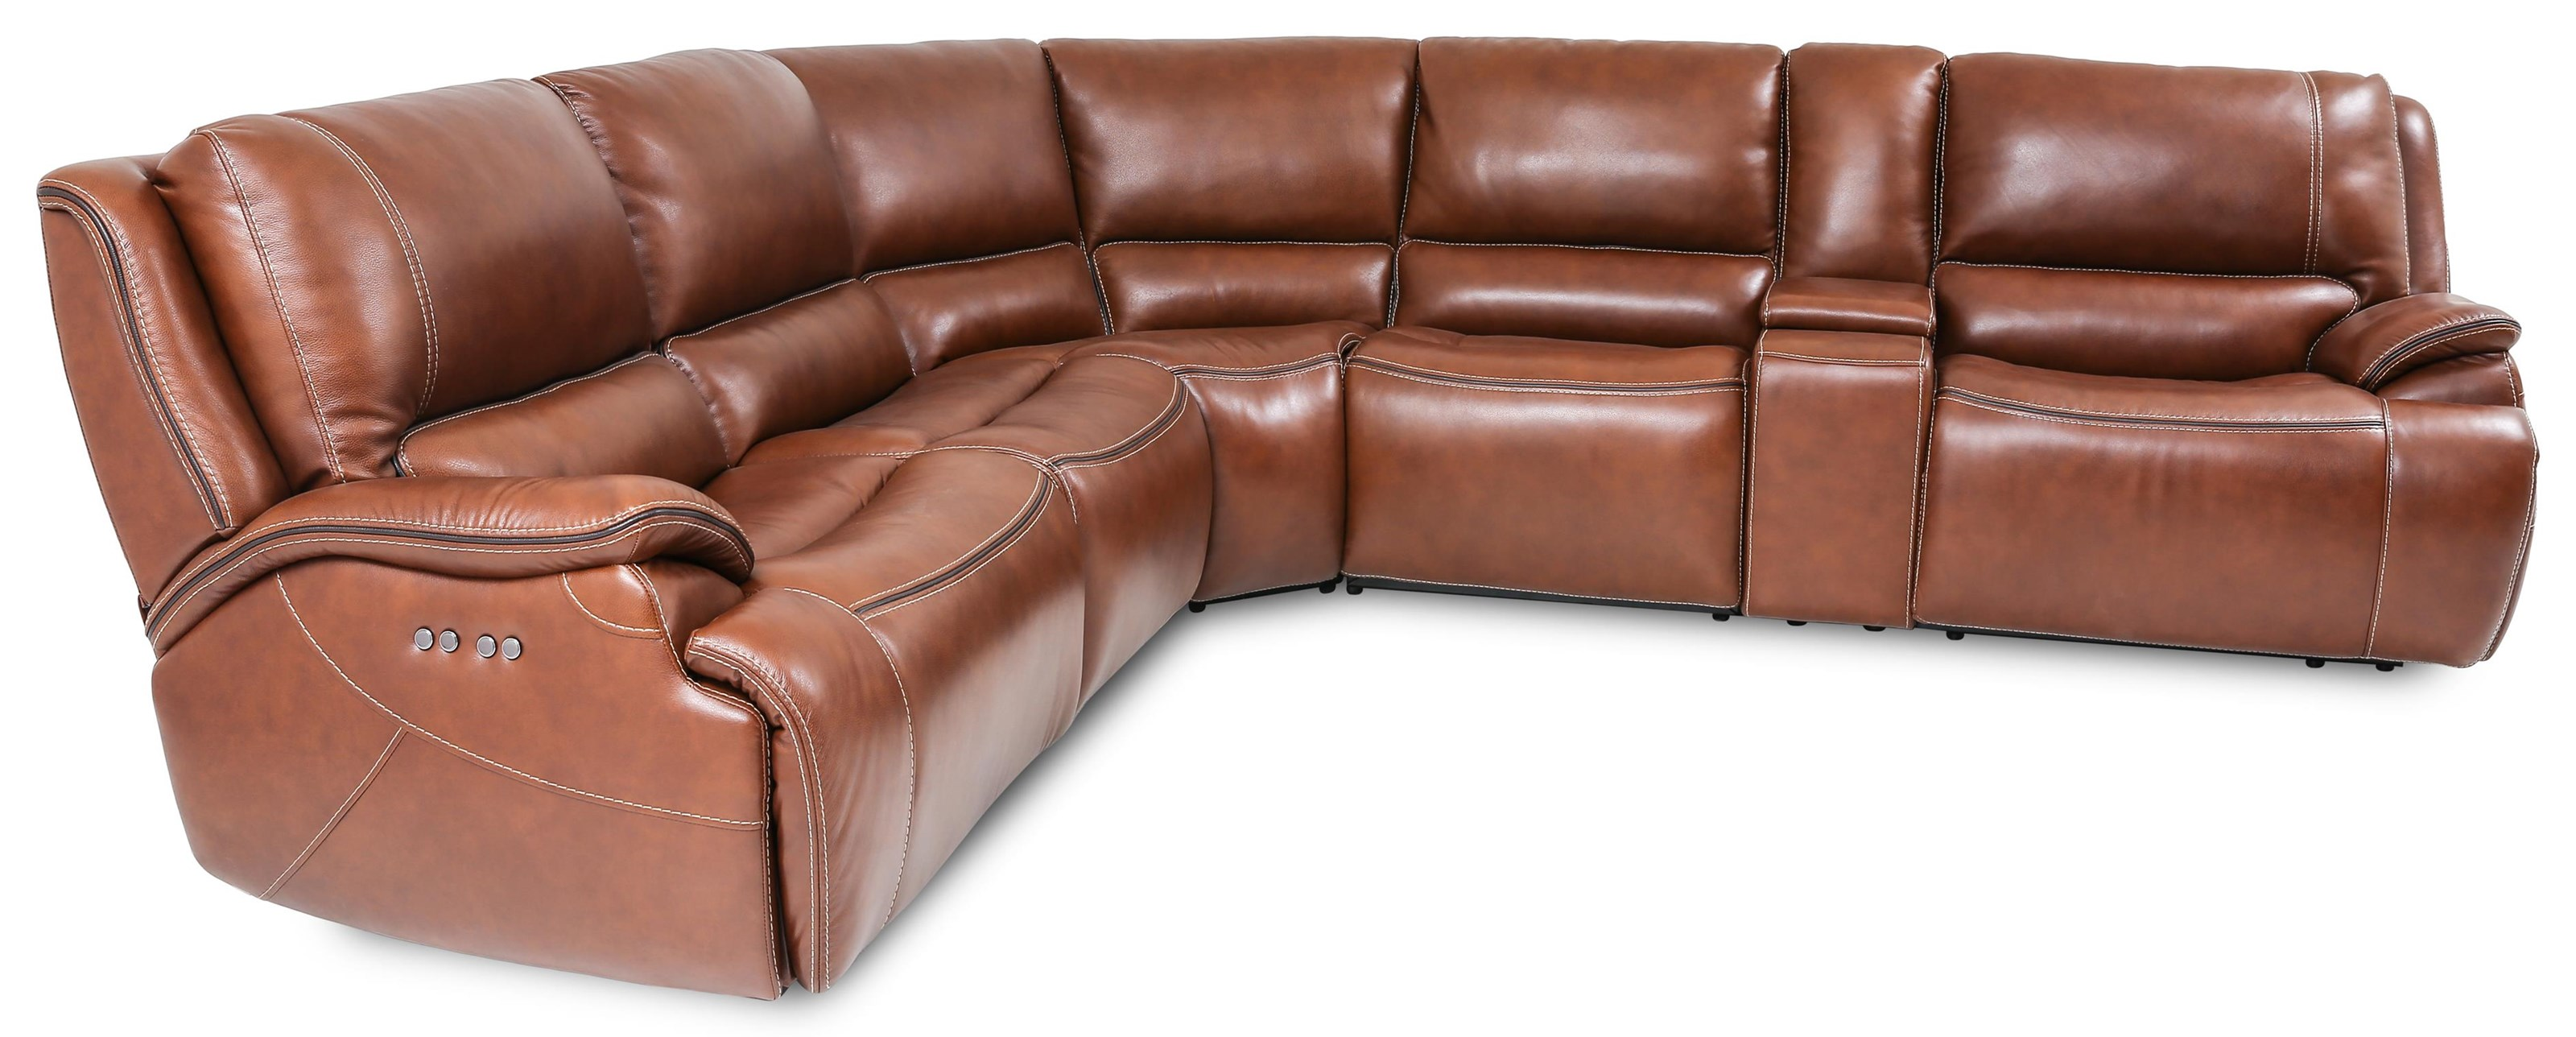 6-Piece Power Reclining Sectional Sofa with